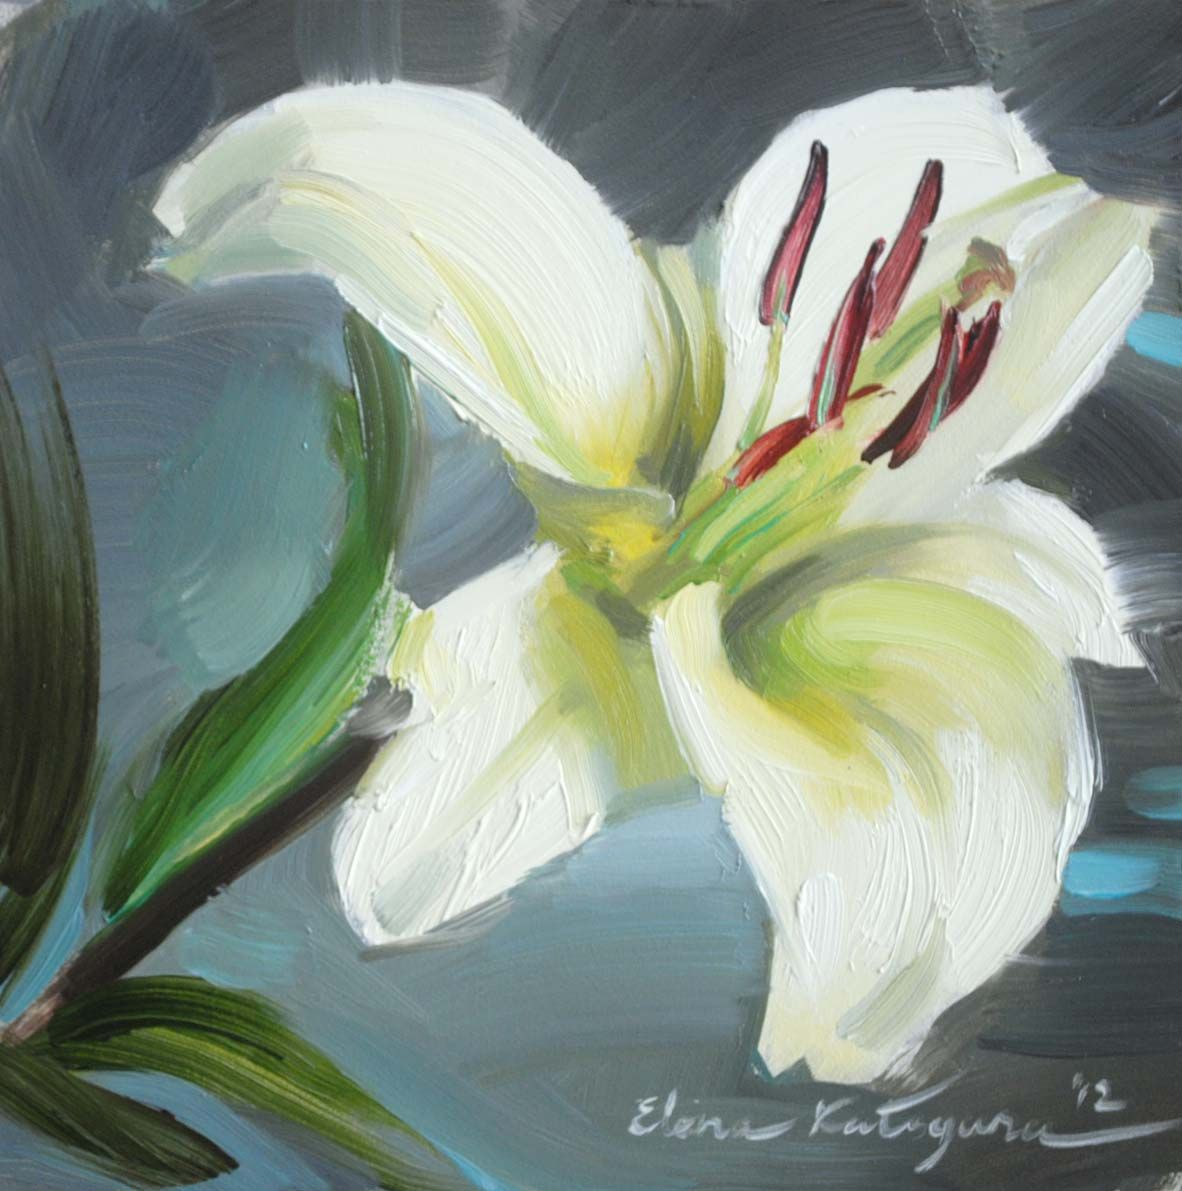 Dead lily flower google search festmny pinterest paintings dead lily flower google search izmirmasajfo Image collections